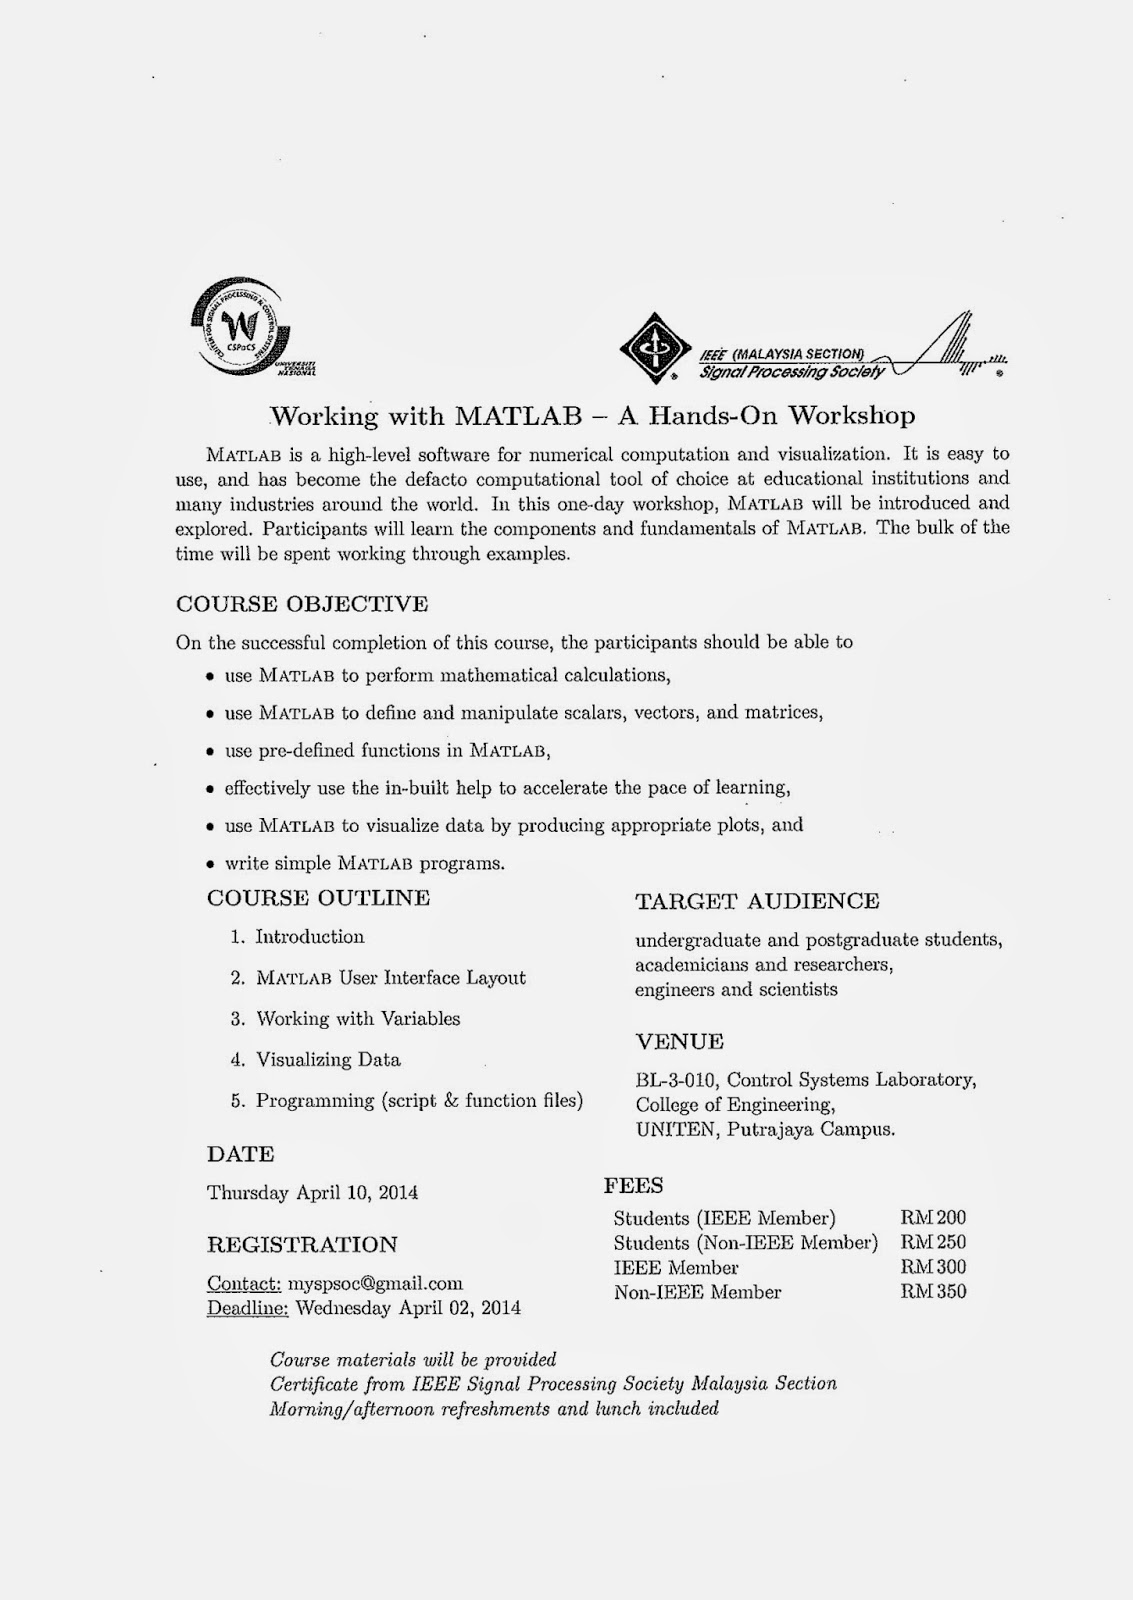 Engineering Industrial Training: Announcement on Hands-On